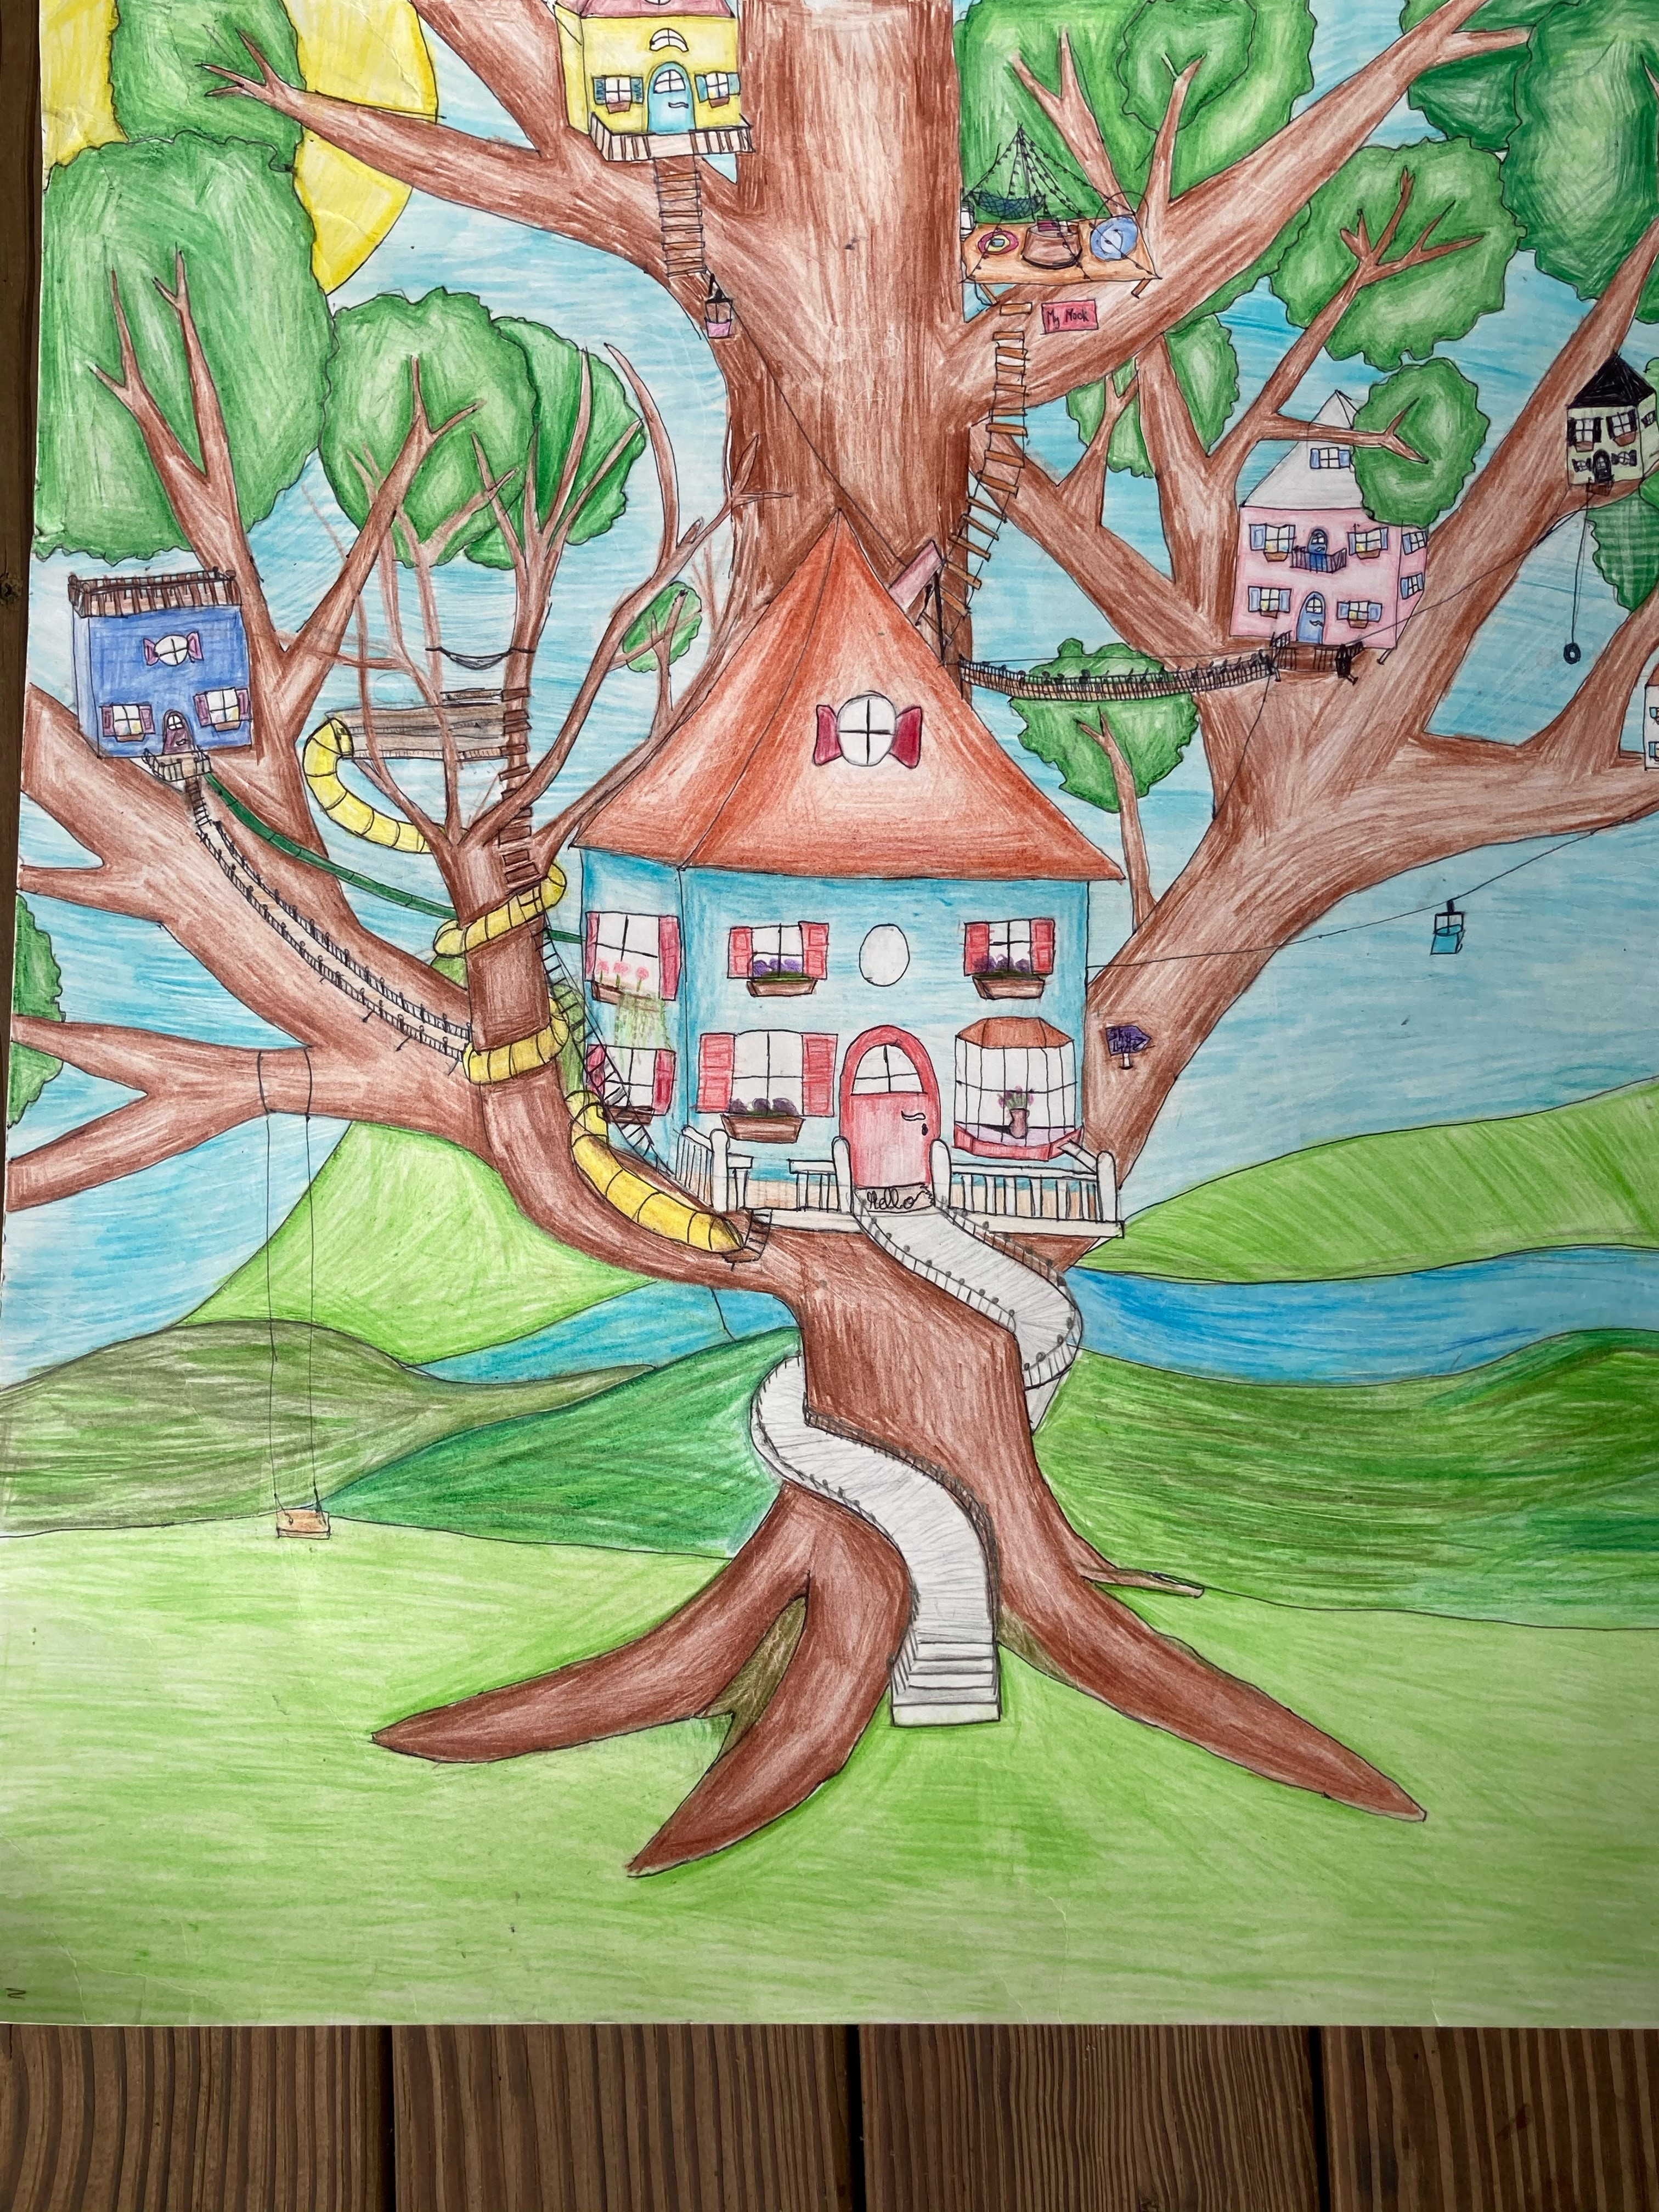 Congratulations to the Winners of our Dream House Coloring Contest!